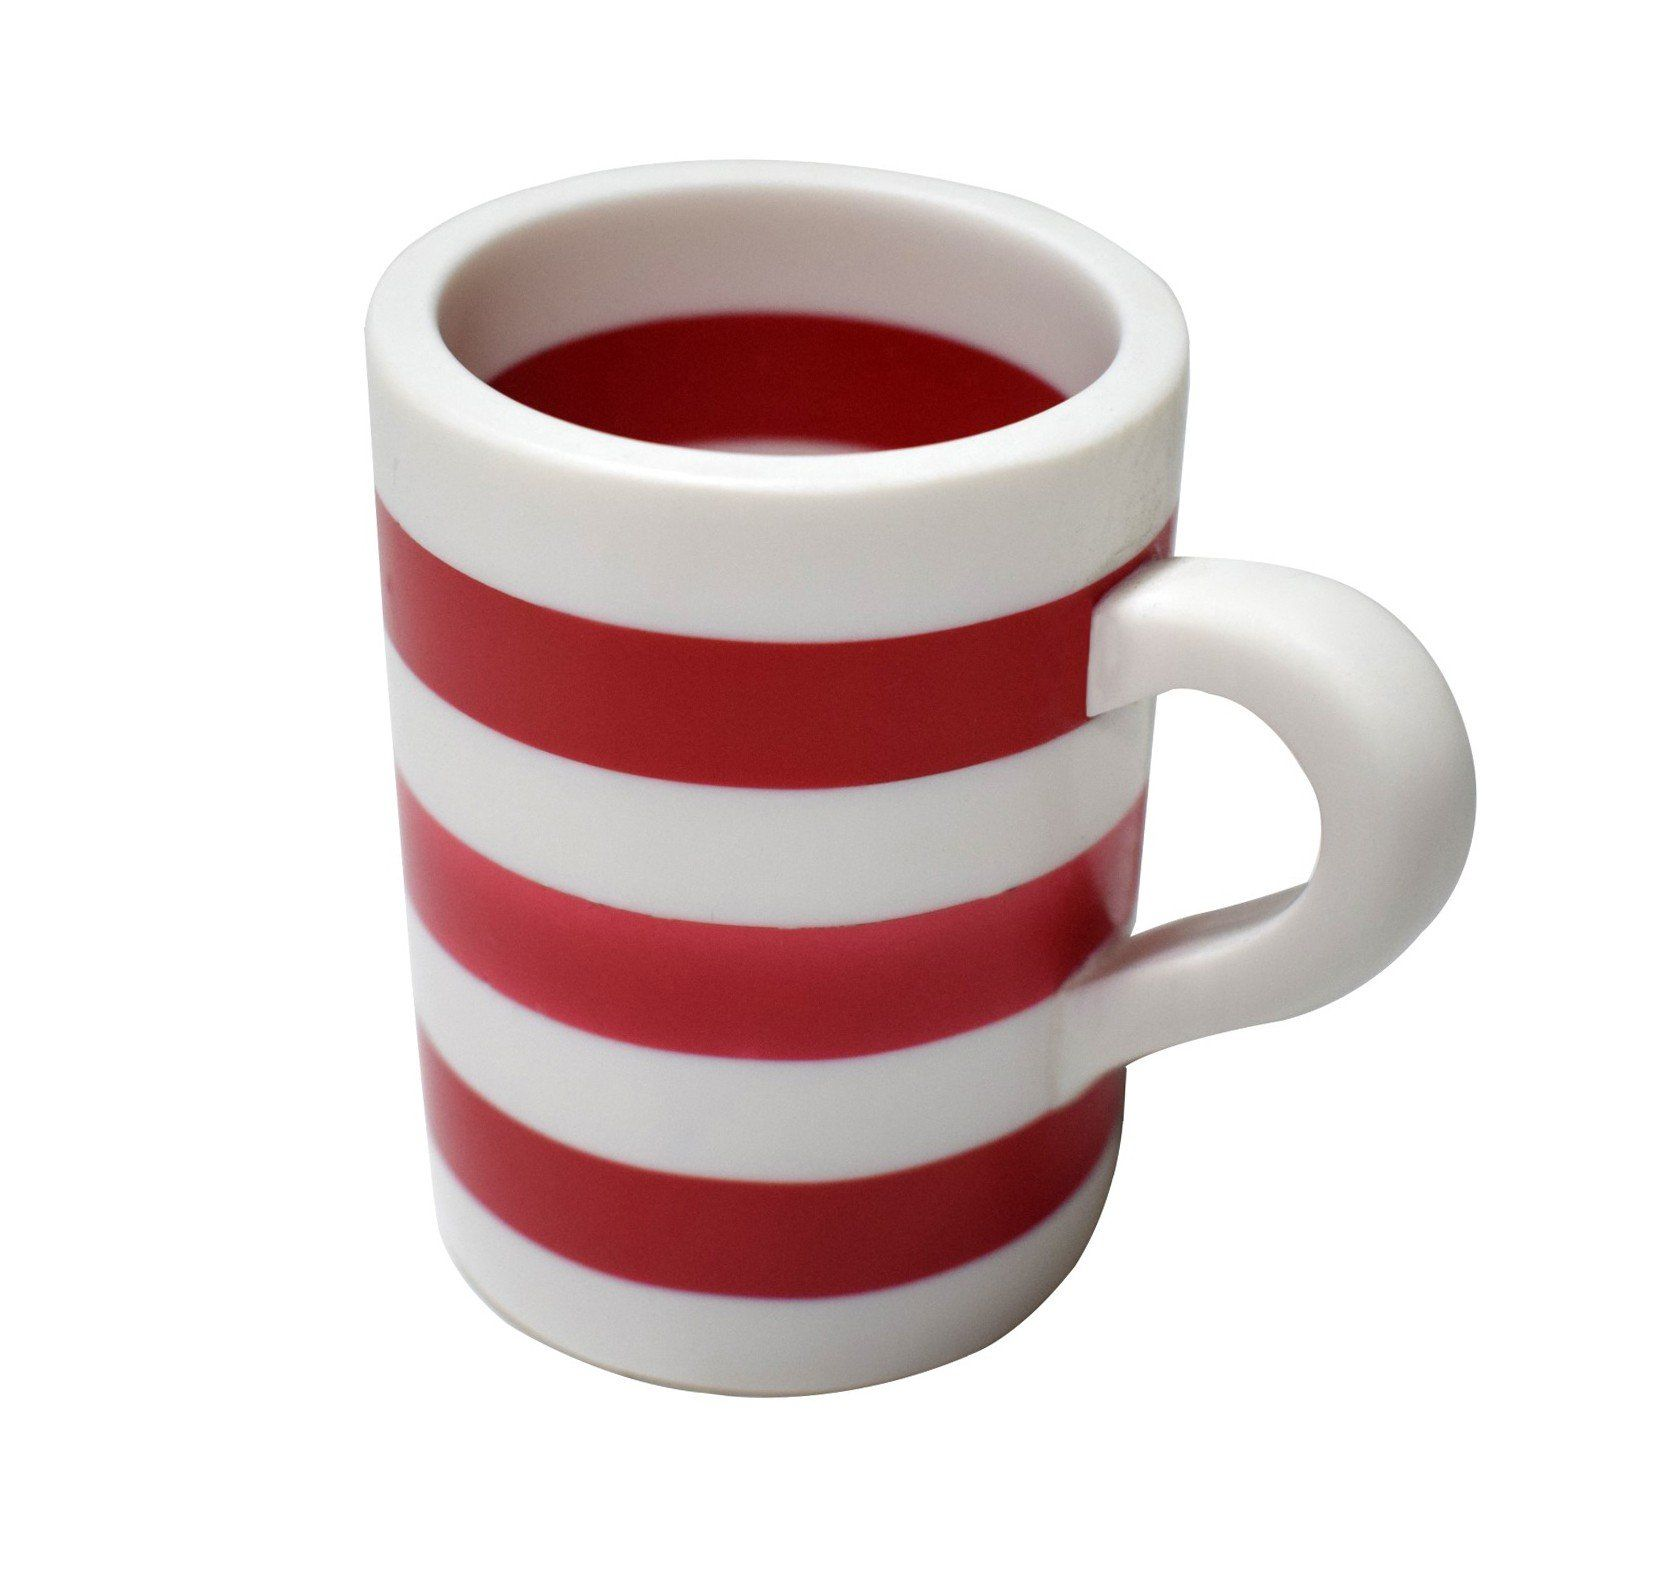 Red & White Line Pattern ready for your tea & coffee mug